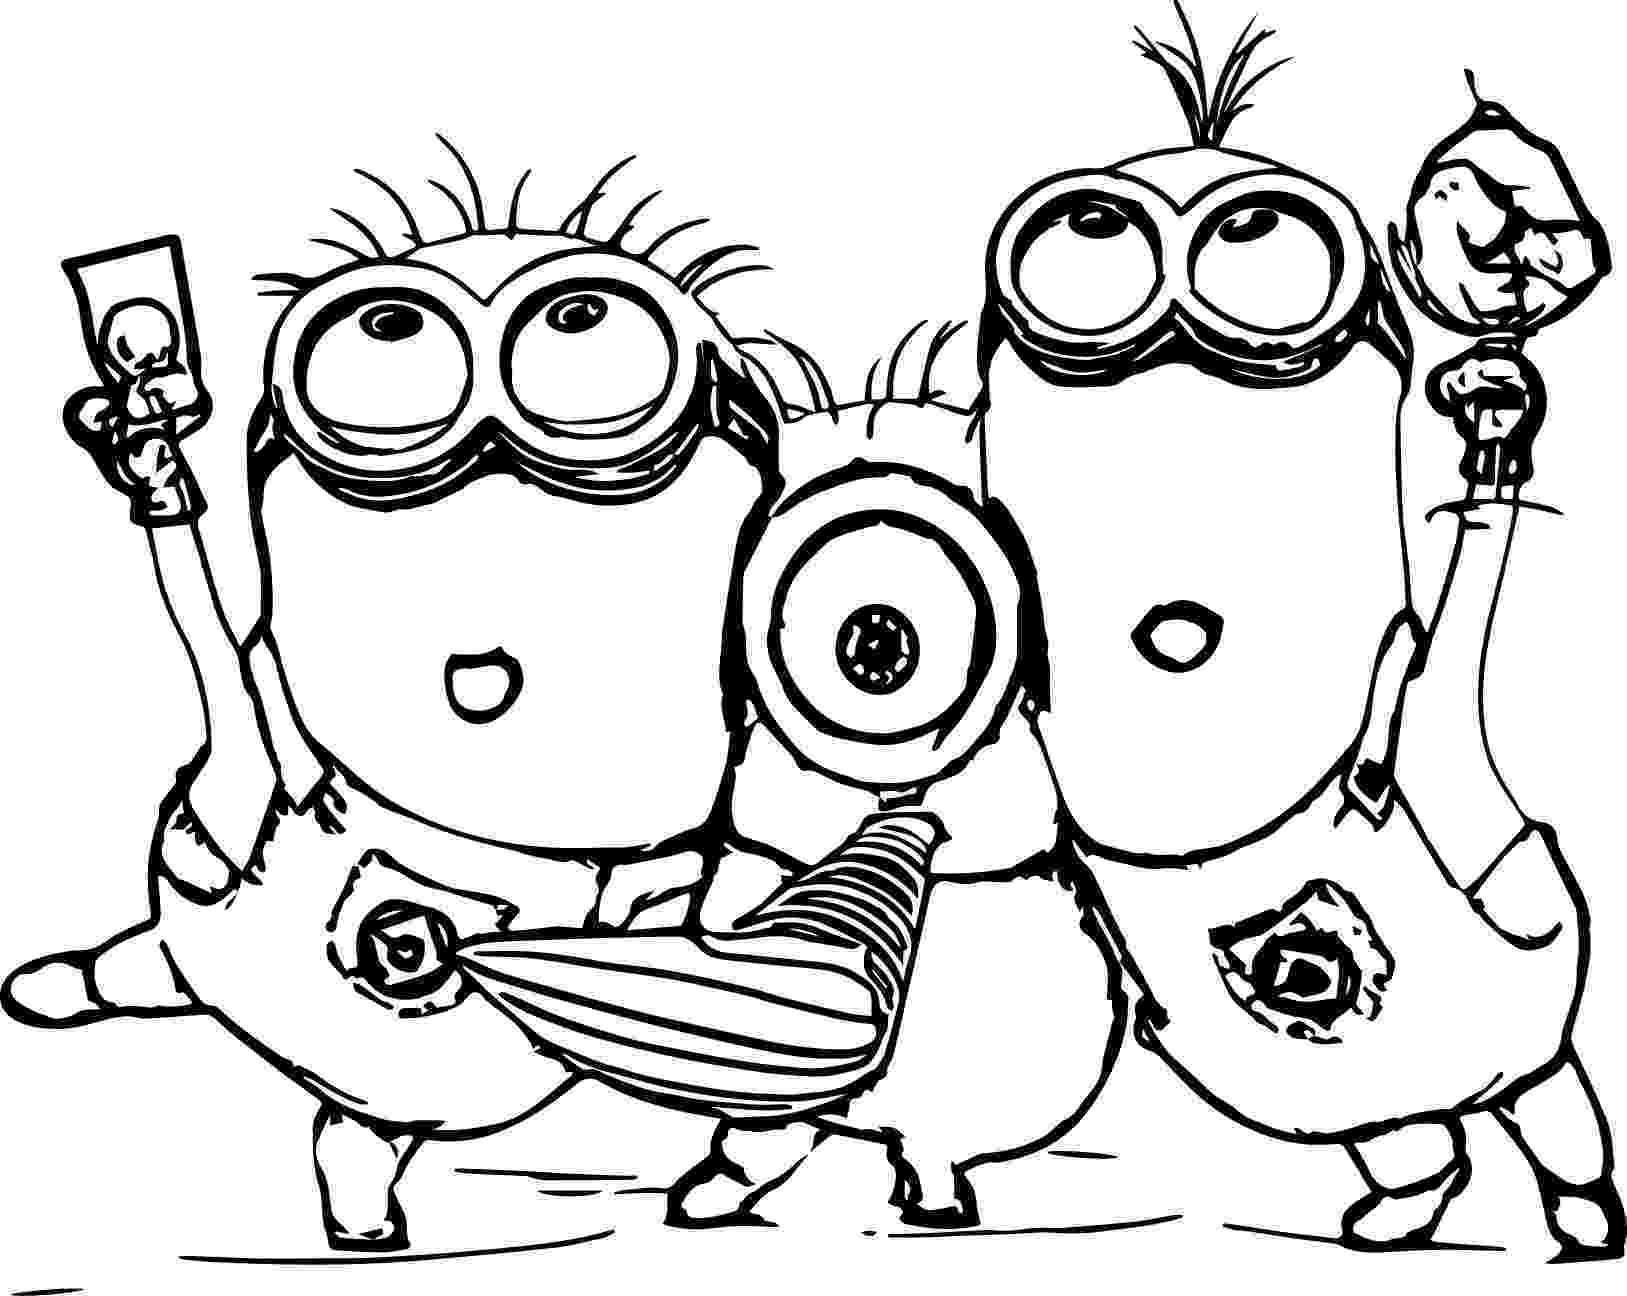 printable minions minion coloring pages best coloring pages for kids printable minions 1 2